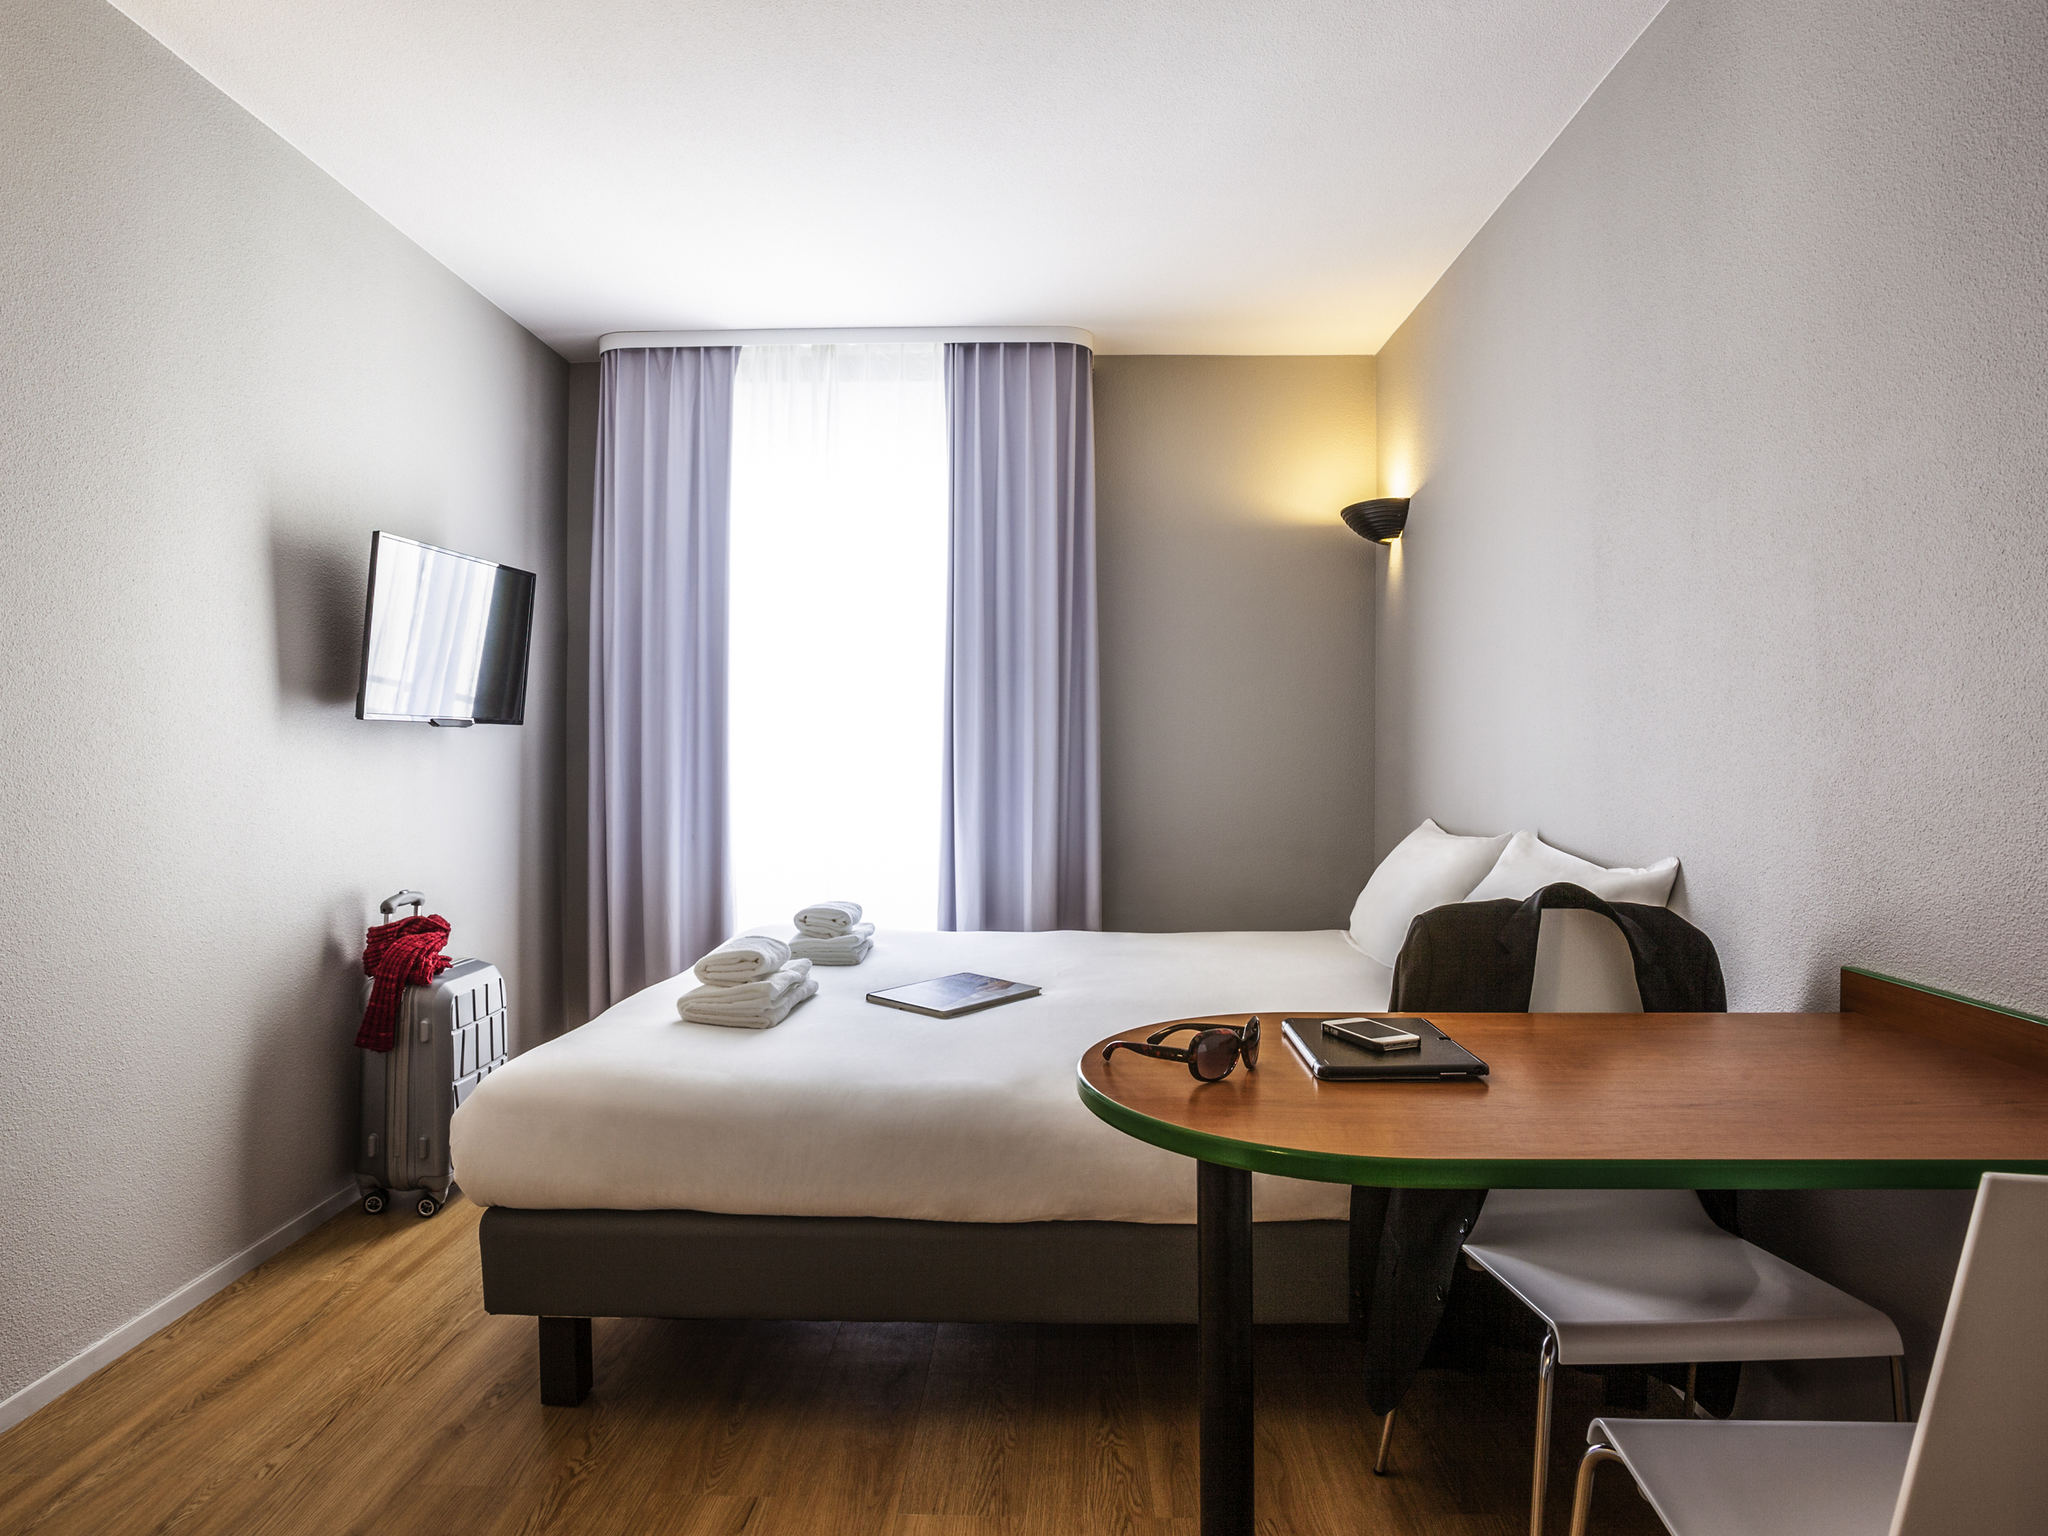 Hotel – Aparthotel Adagio access Paris Maisons Alfort